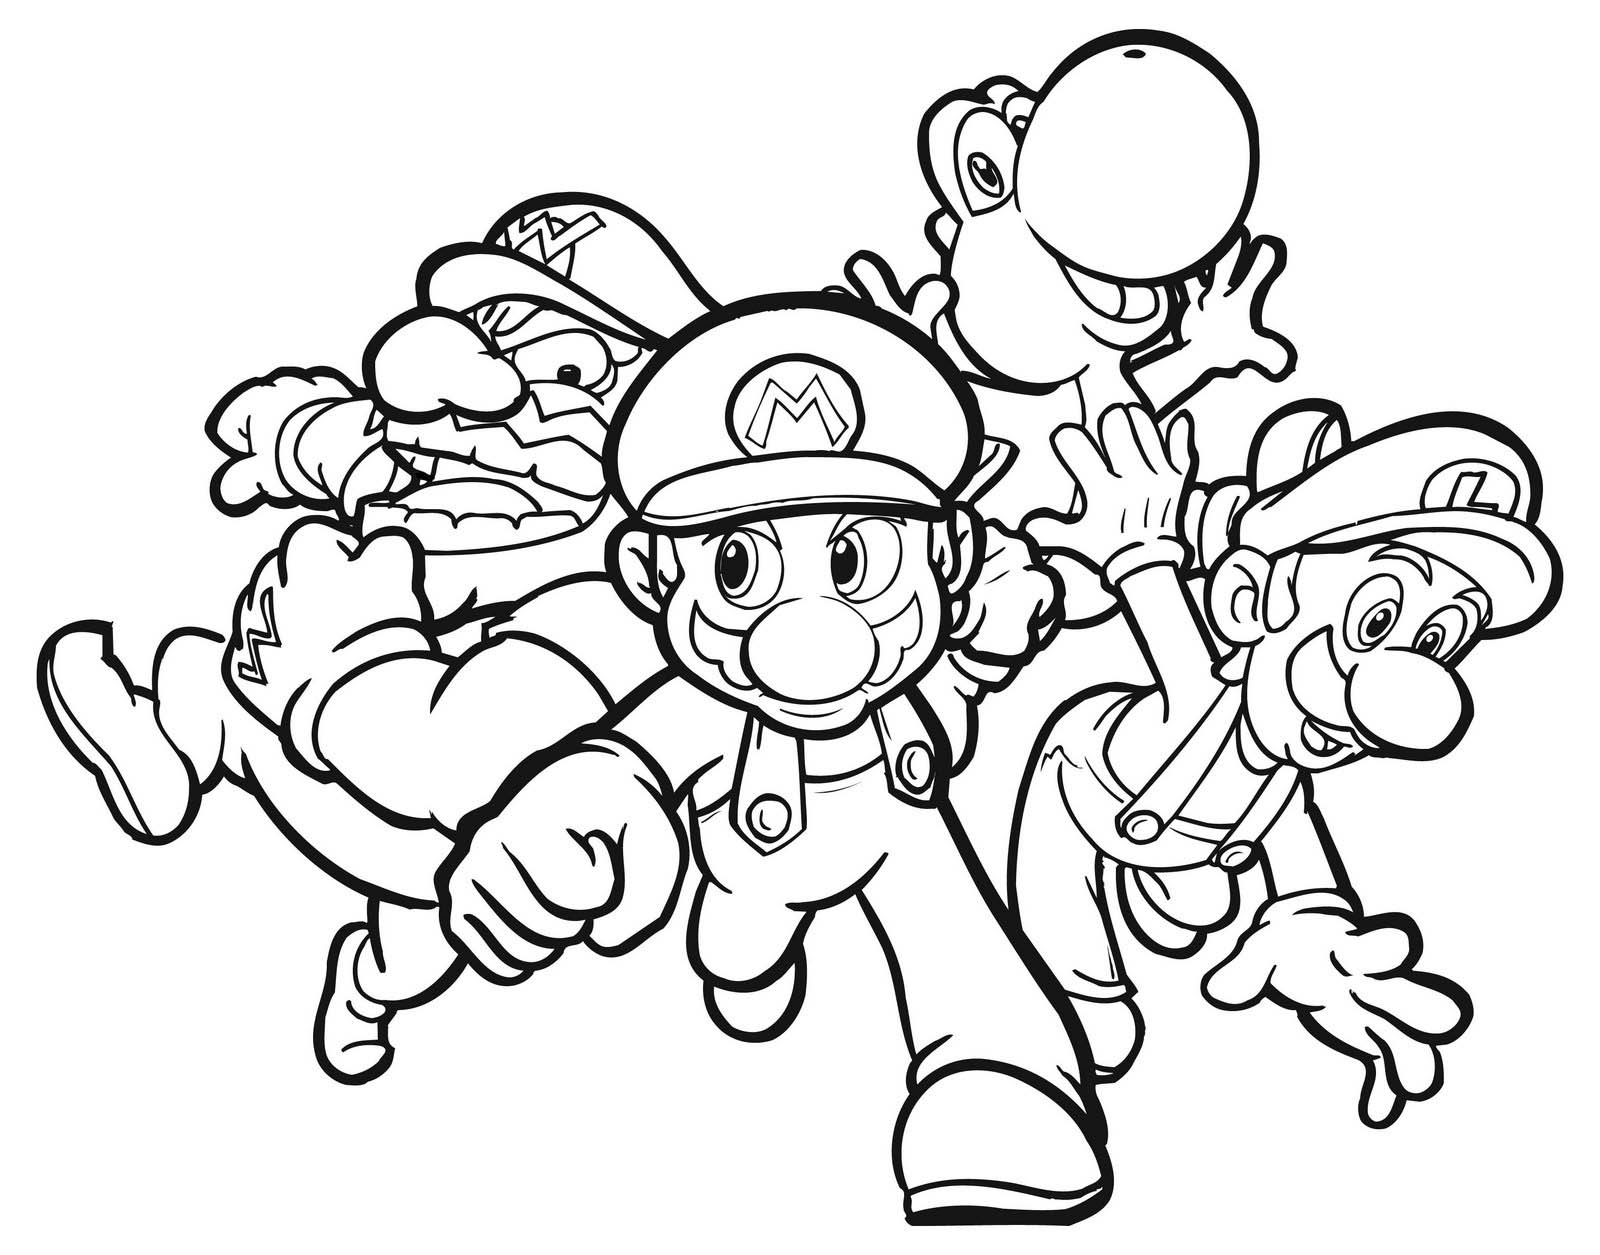 mario coloring book pages coloring pages mario coloring pages free and printable book pages mario coloring